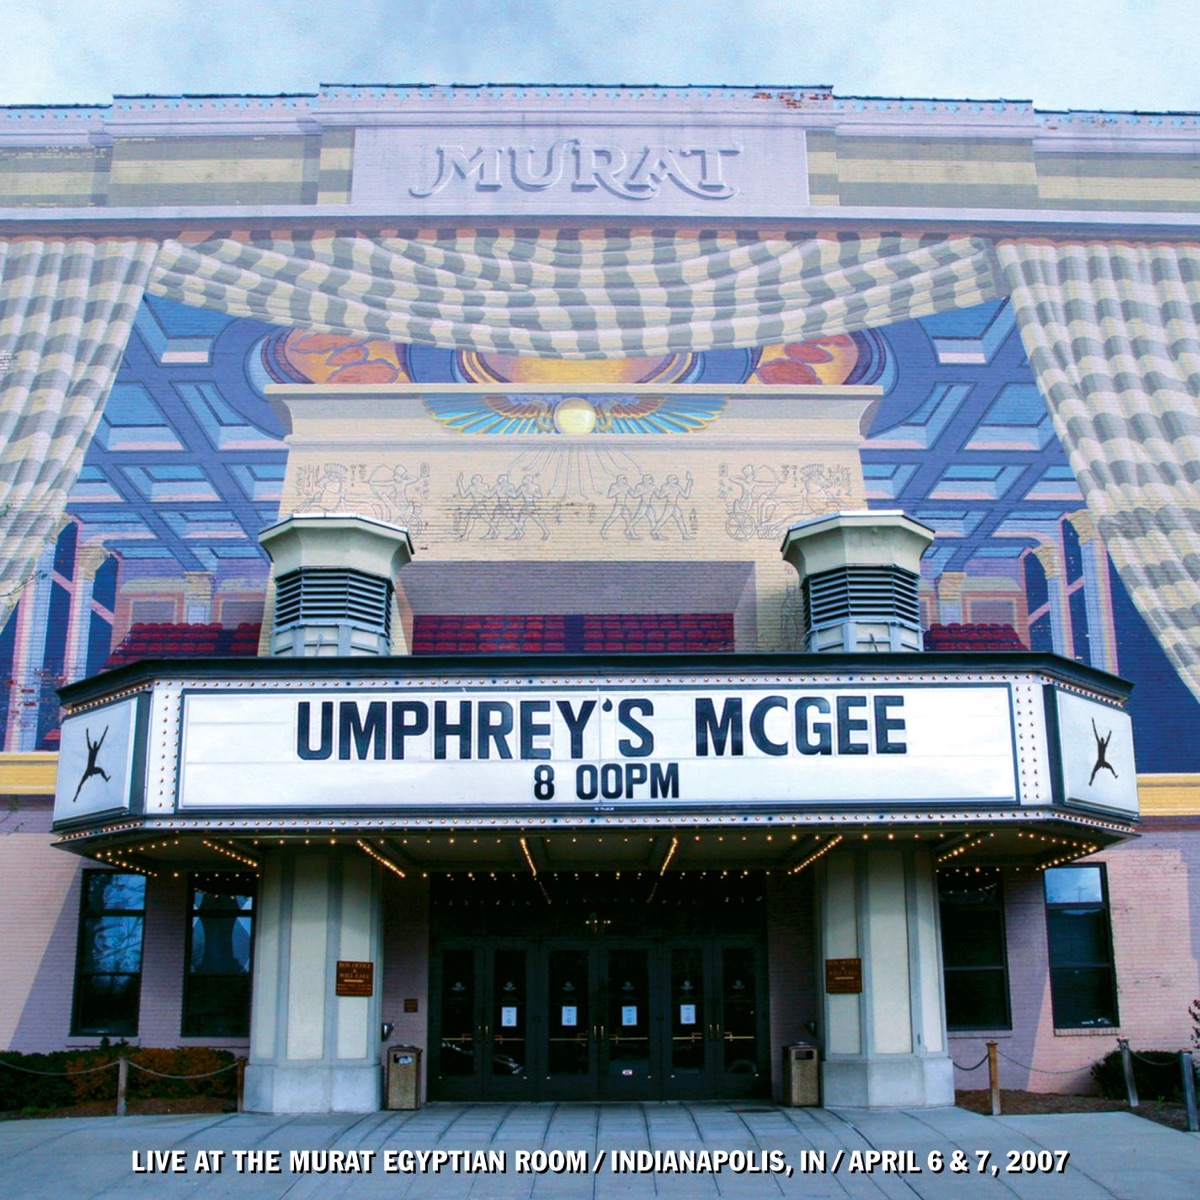 Live At the Murat Umphreys McGee CD cover